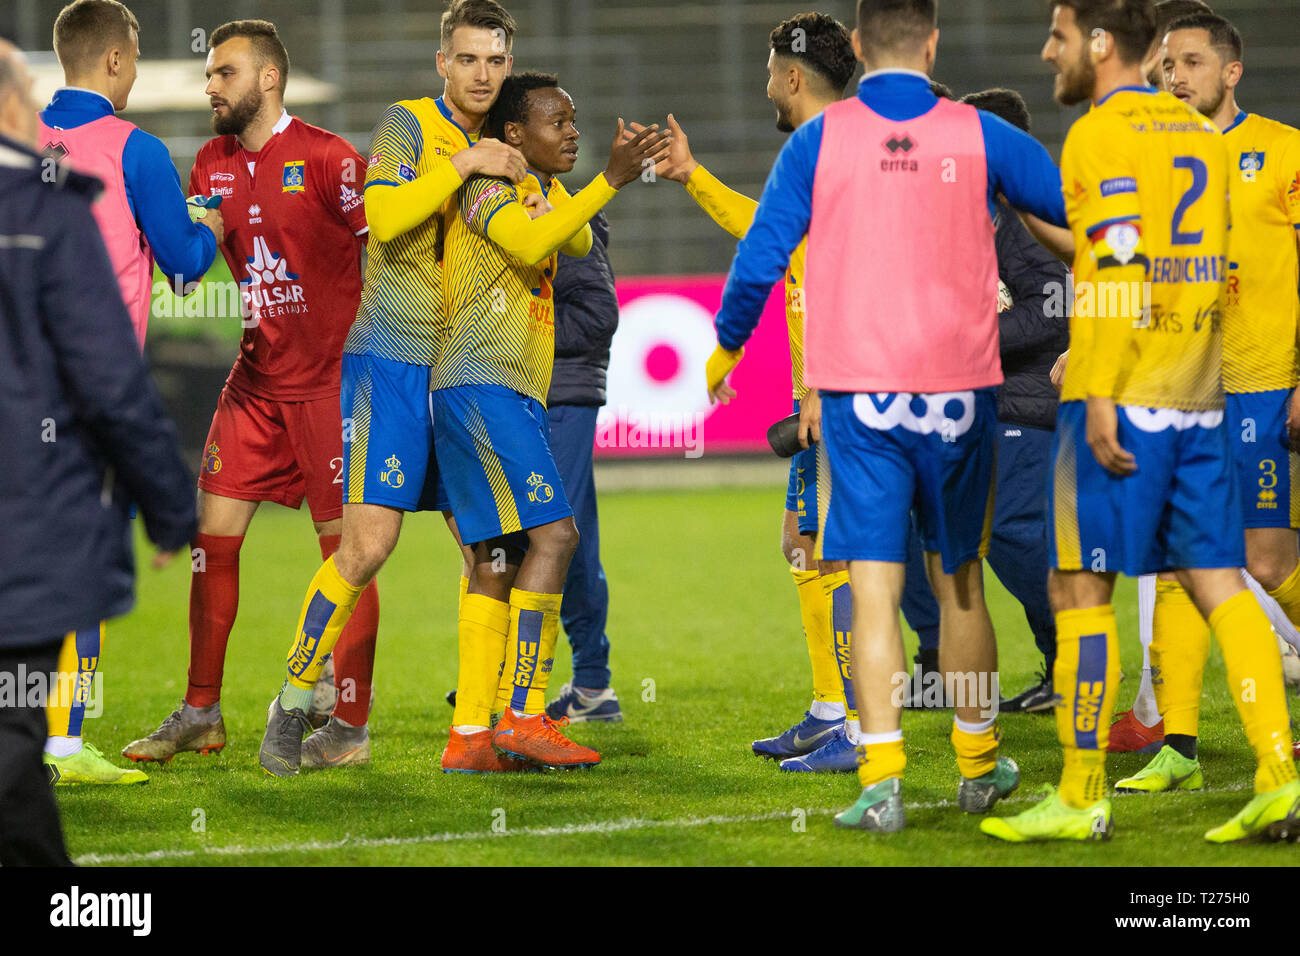 Brussels Belgium March 30 Team Celebrates After Winning The Jupiler Pro League Play Off 2 Matchday 1 Between Union St Gilloise And Cercle Brugge Picture Frank Abbeloos Isosport Stock Photo Alamy